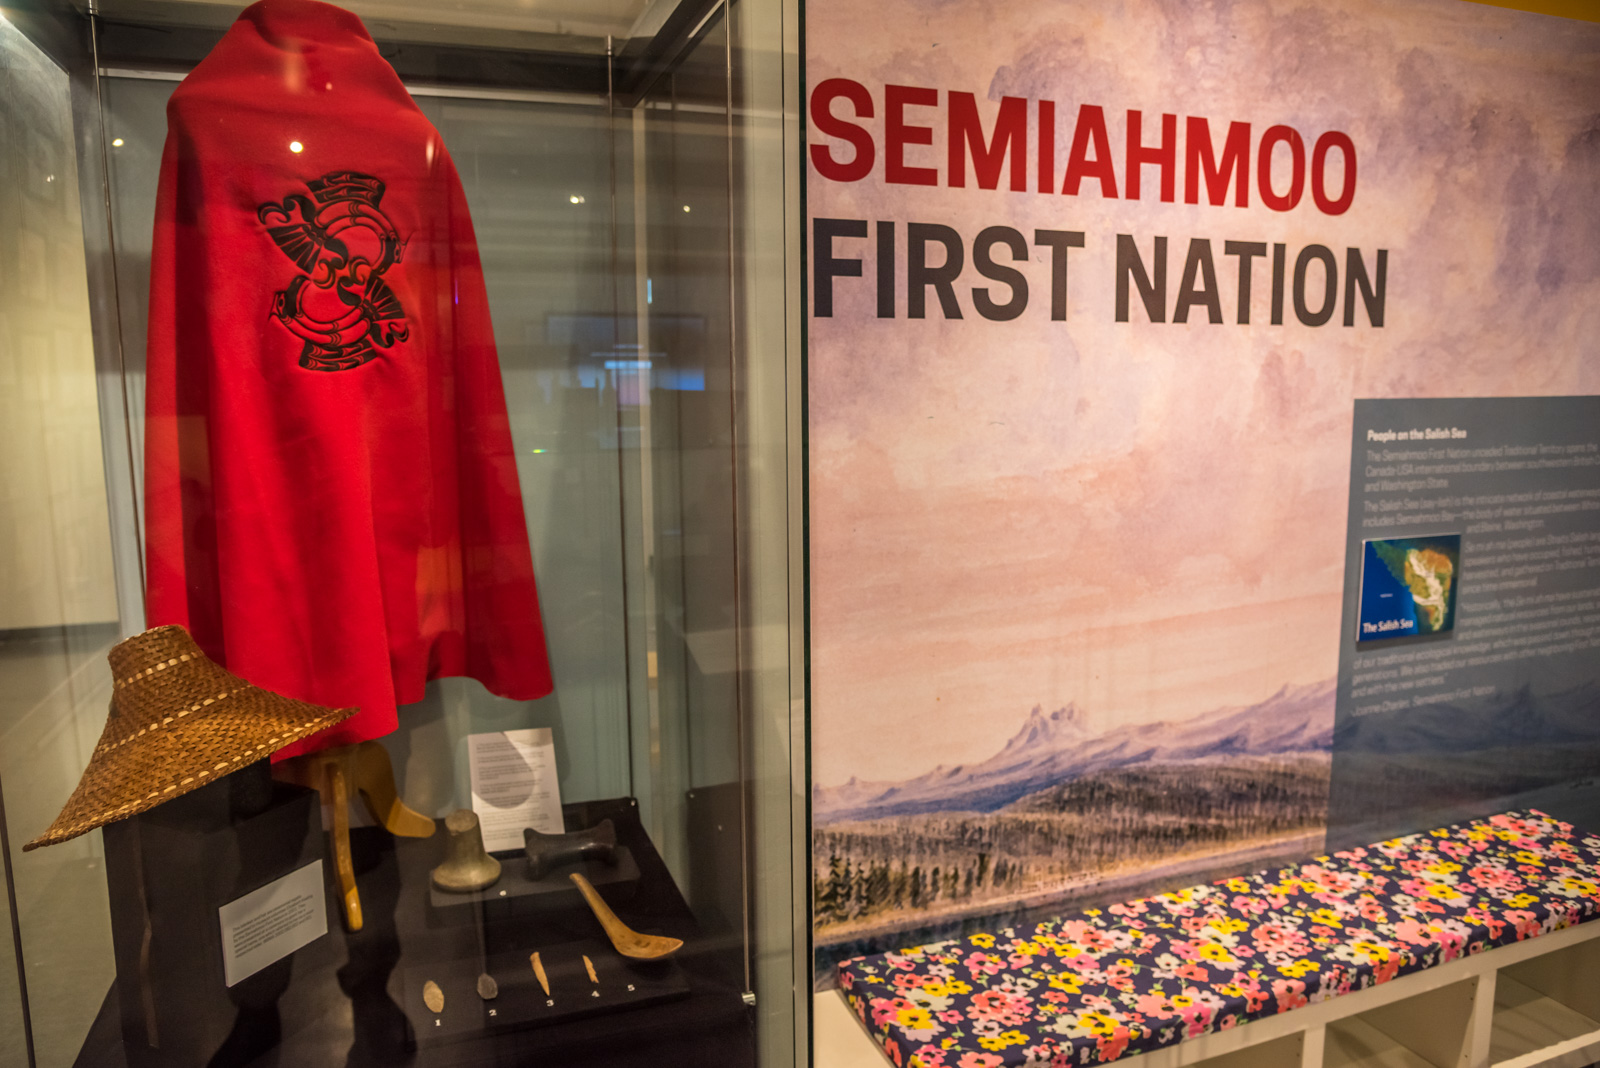 Semiahmoo First Nation display